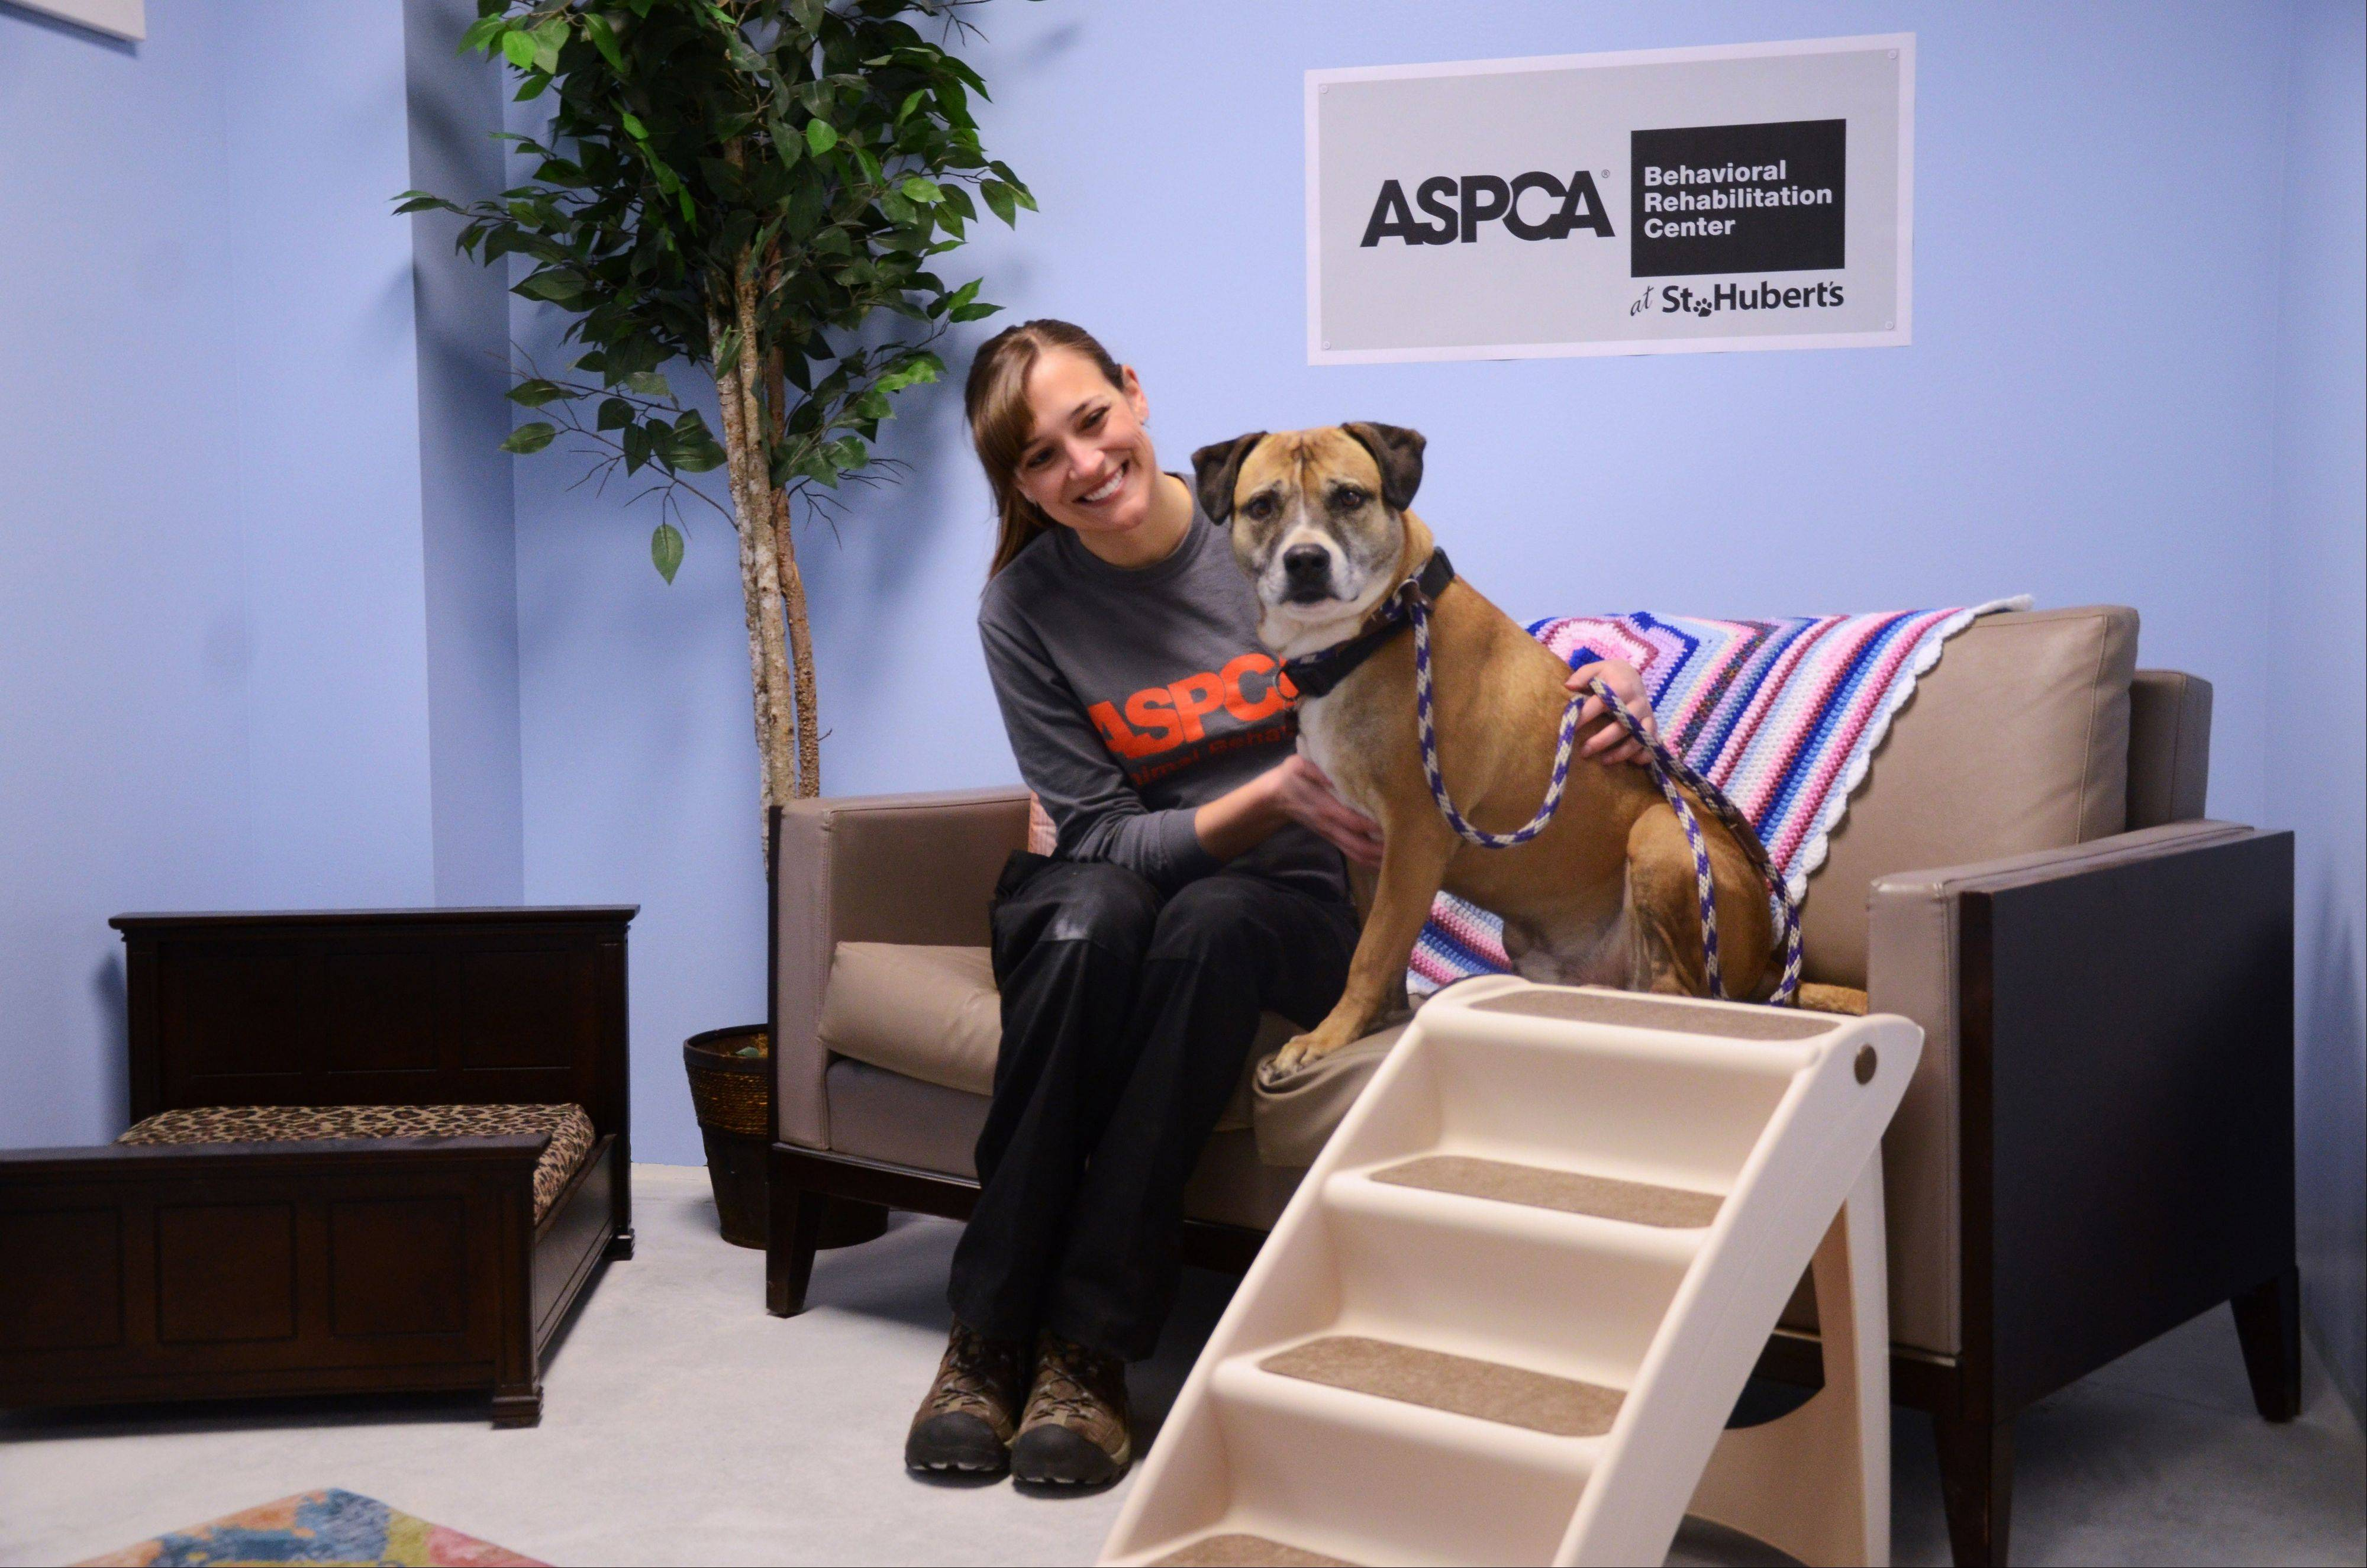 Lauren Zvernia, ASPCA animal behavior enrichment coordinator, works with Musketeer, a 5-year-old Shepard-pit bull mix, in one of the real life rooms at the ASPCA Behavioral Rehabilitation Center in Madison, N.J.